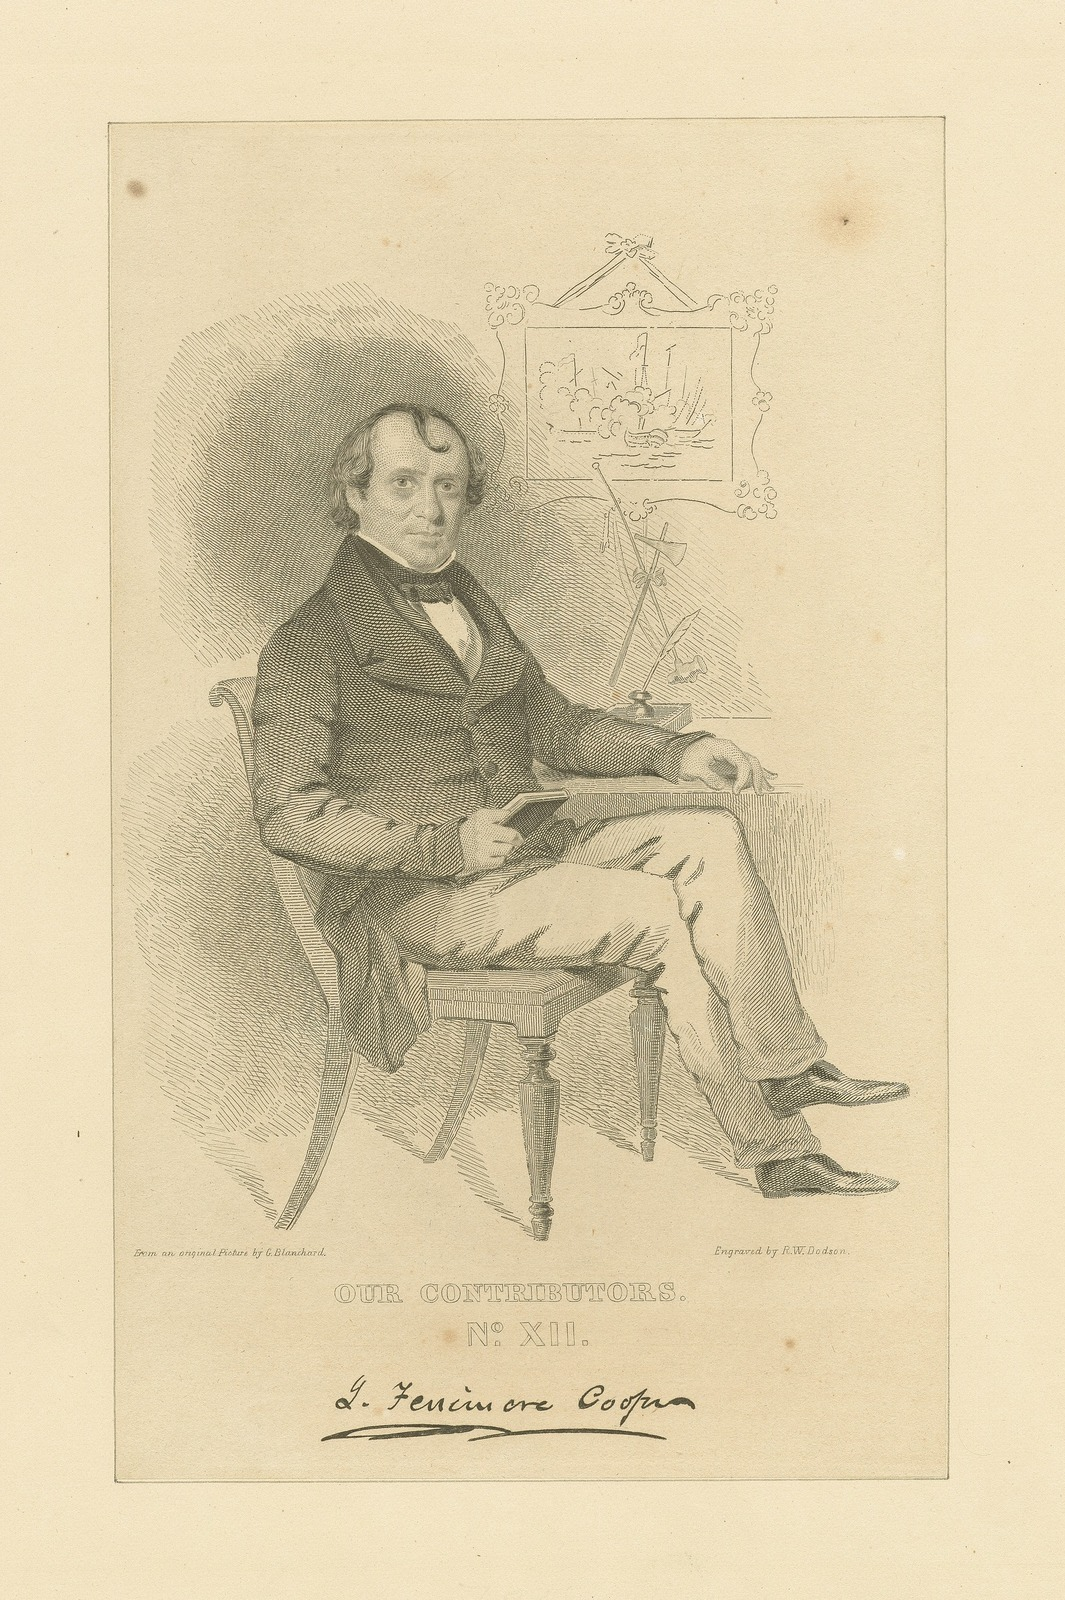 Our contributors No. XII: J. Fenimore Cooper